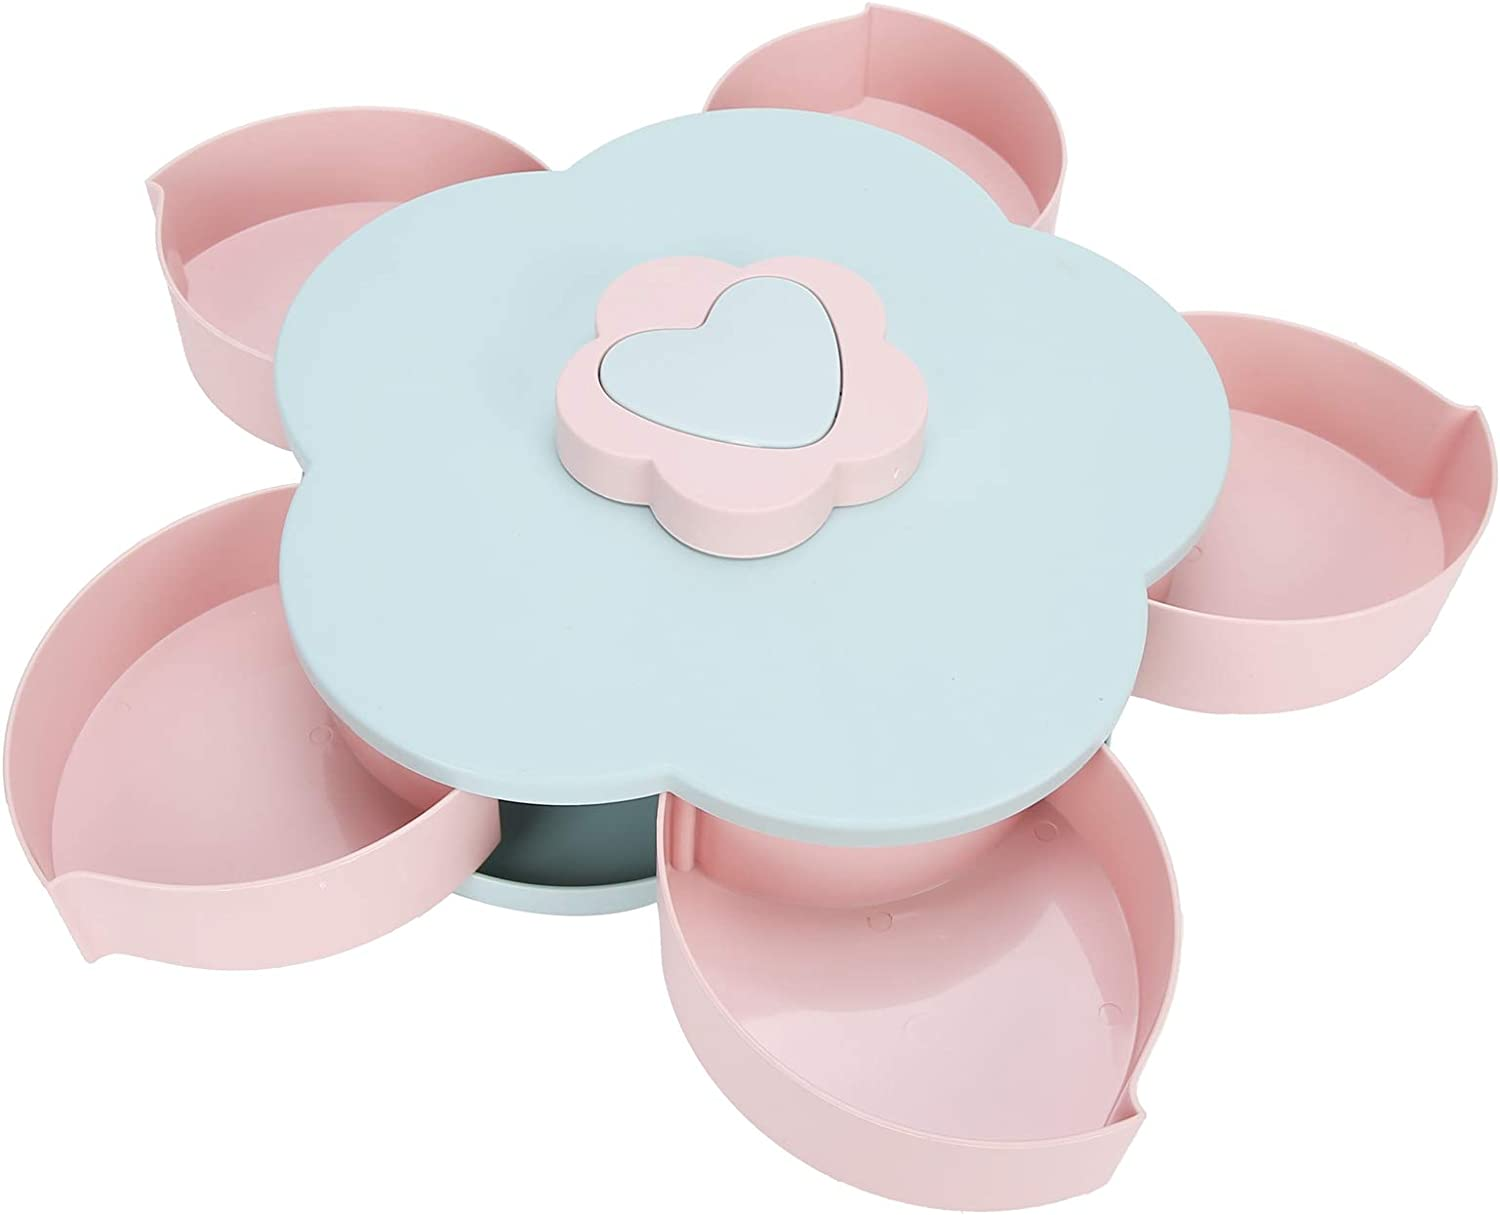 Alvinlite Petal Rotating Dried Portland Mall Fruit Container - Candy Plate Sna Popular shop is the lowest price challenge